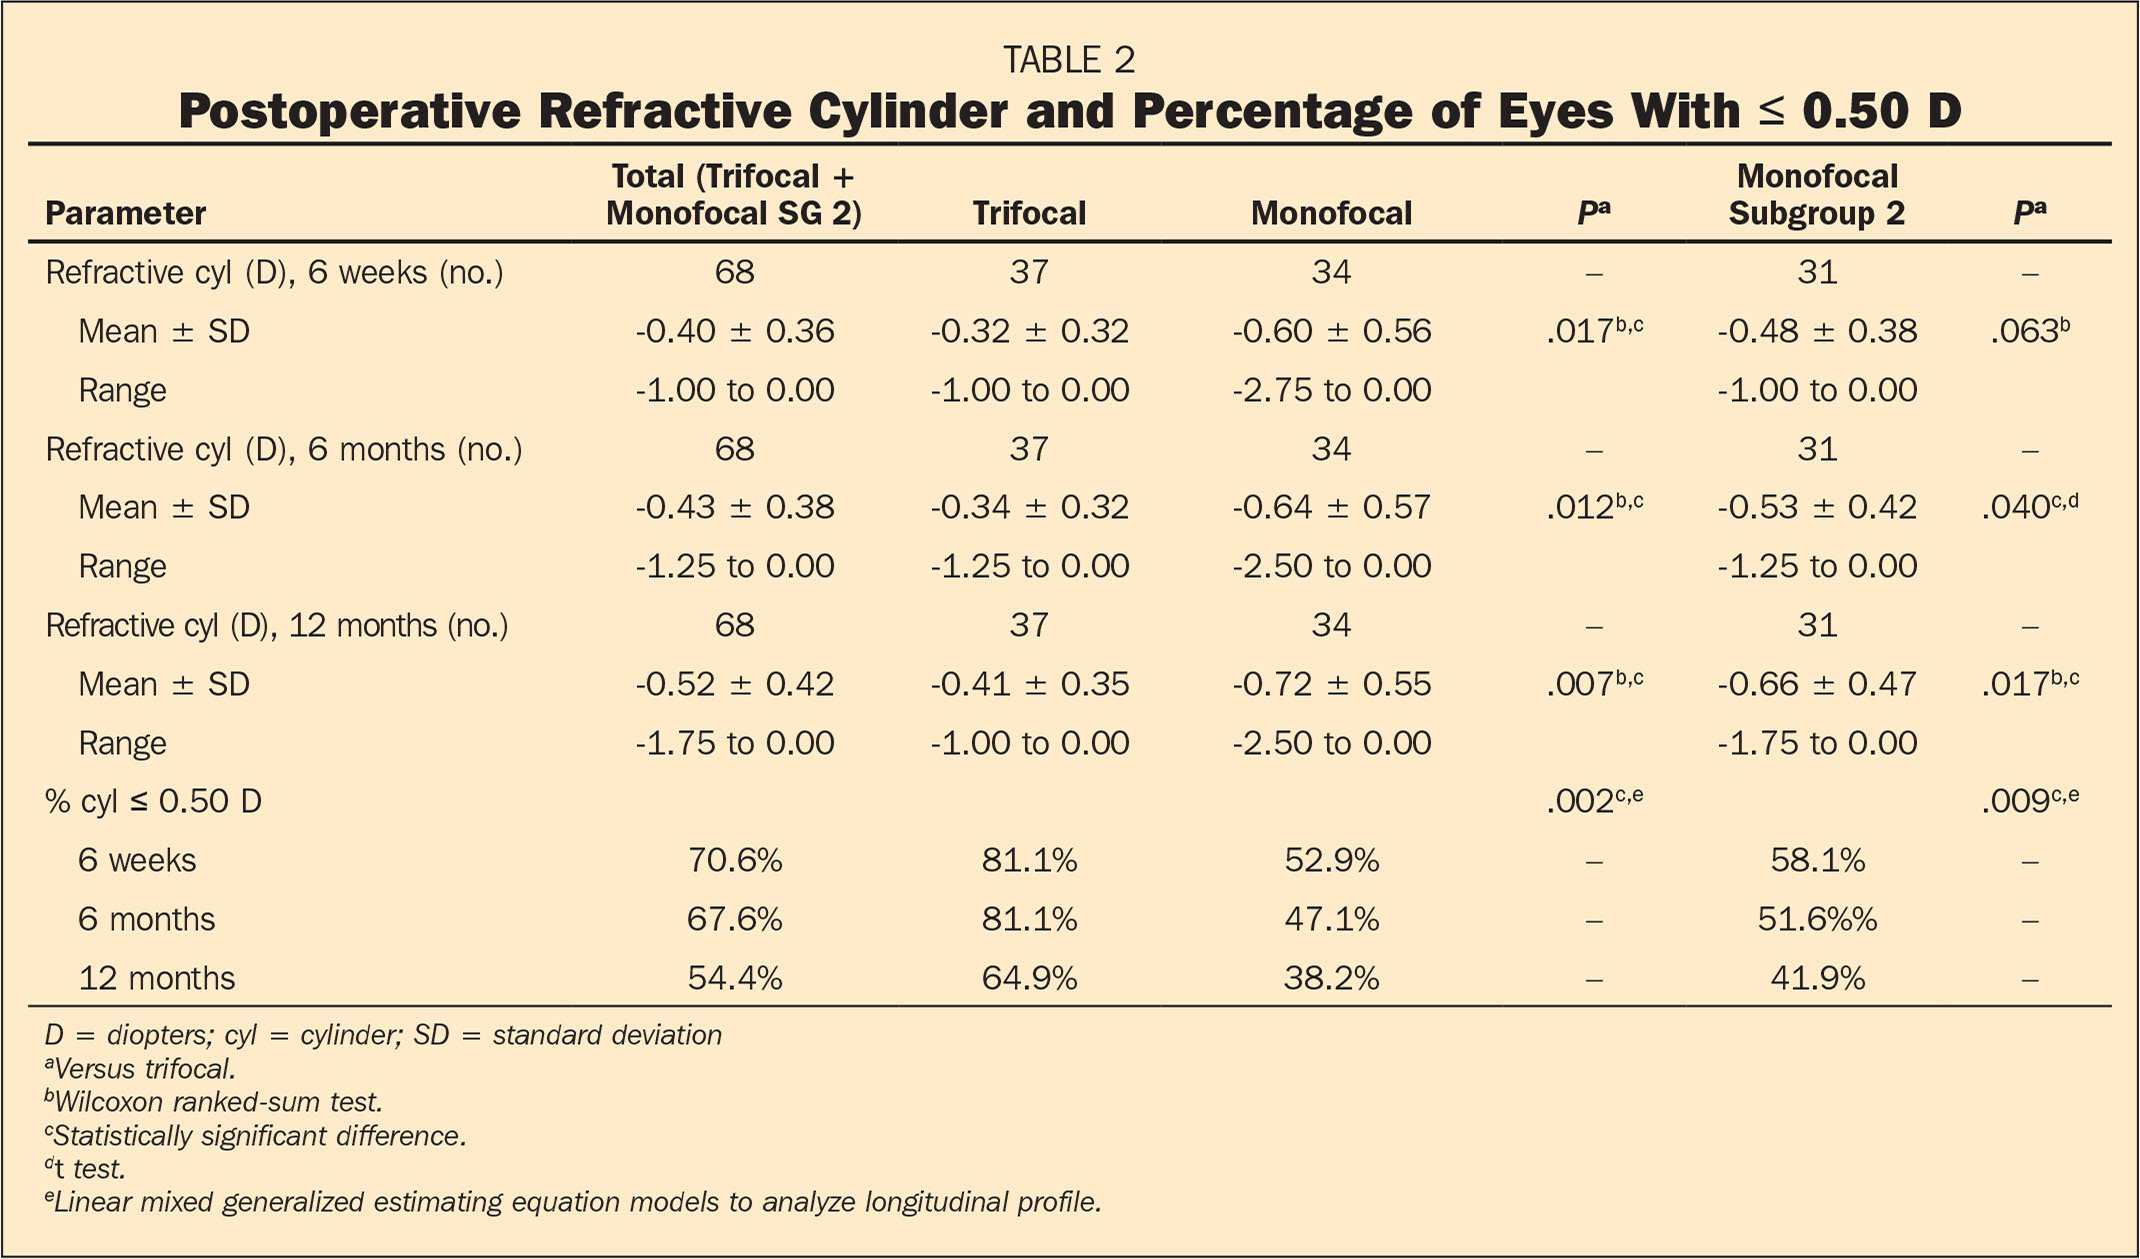 Postoperative Refractive Cylinder and Percentage of Eyes With ≤ 0.50 D